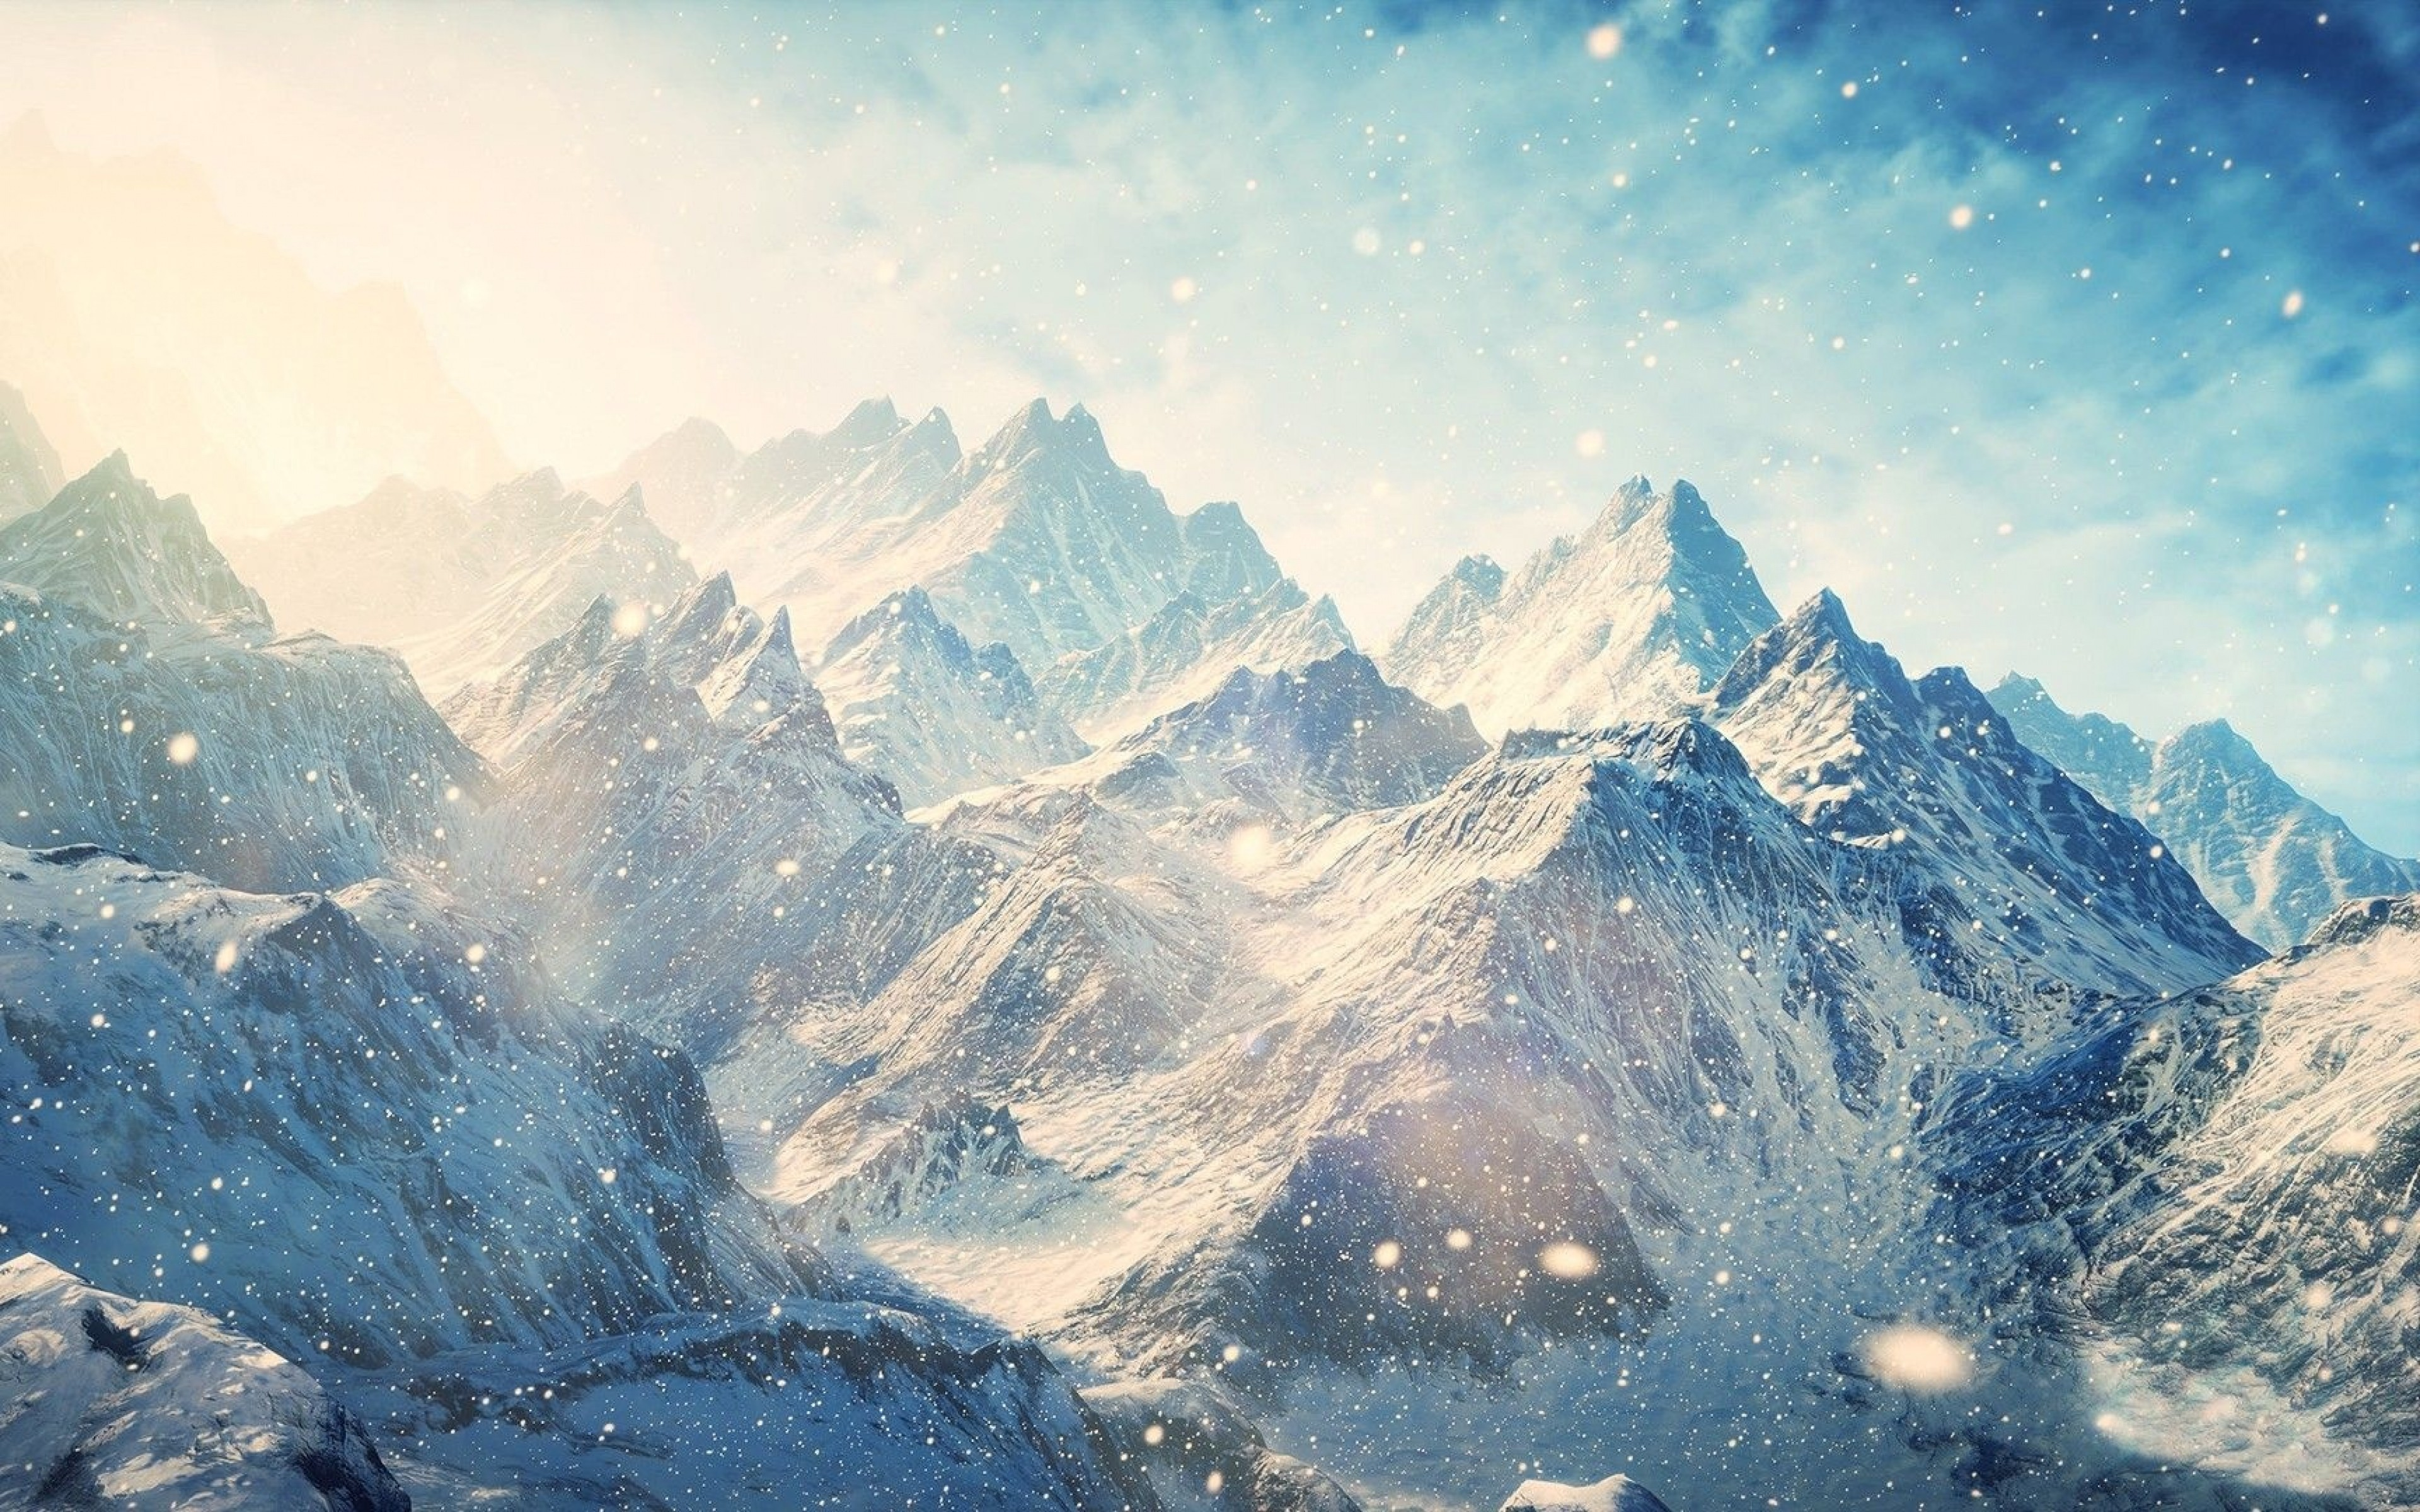 Hd Nature Wallpaper For Android Phone Wallpaper Mountains Snow Winter 4k Nature 17093